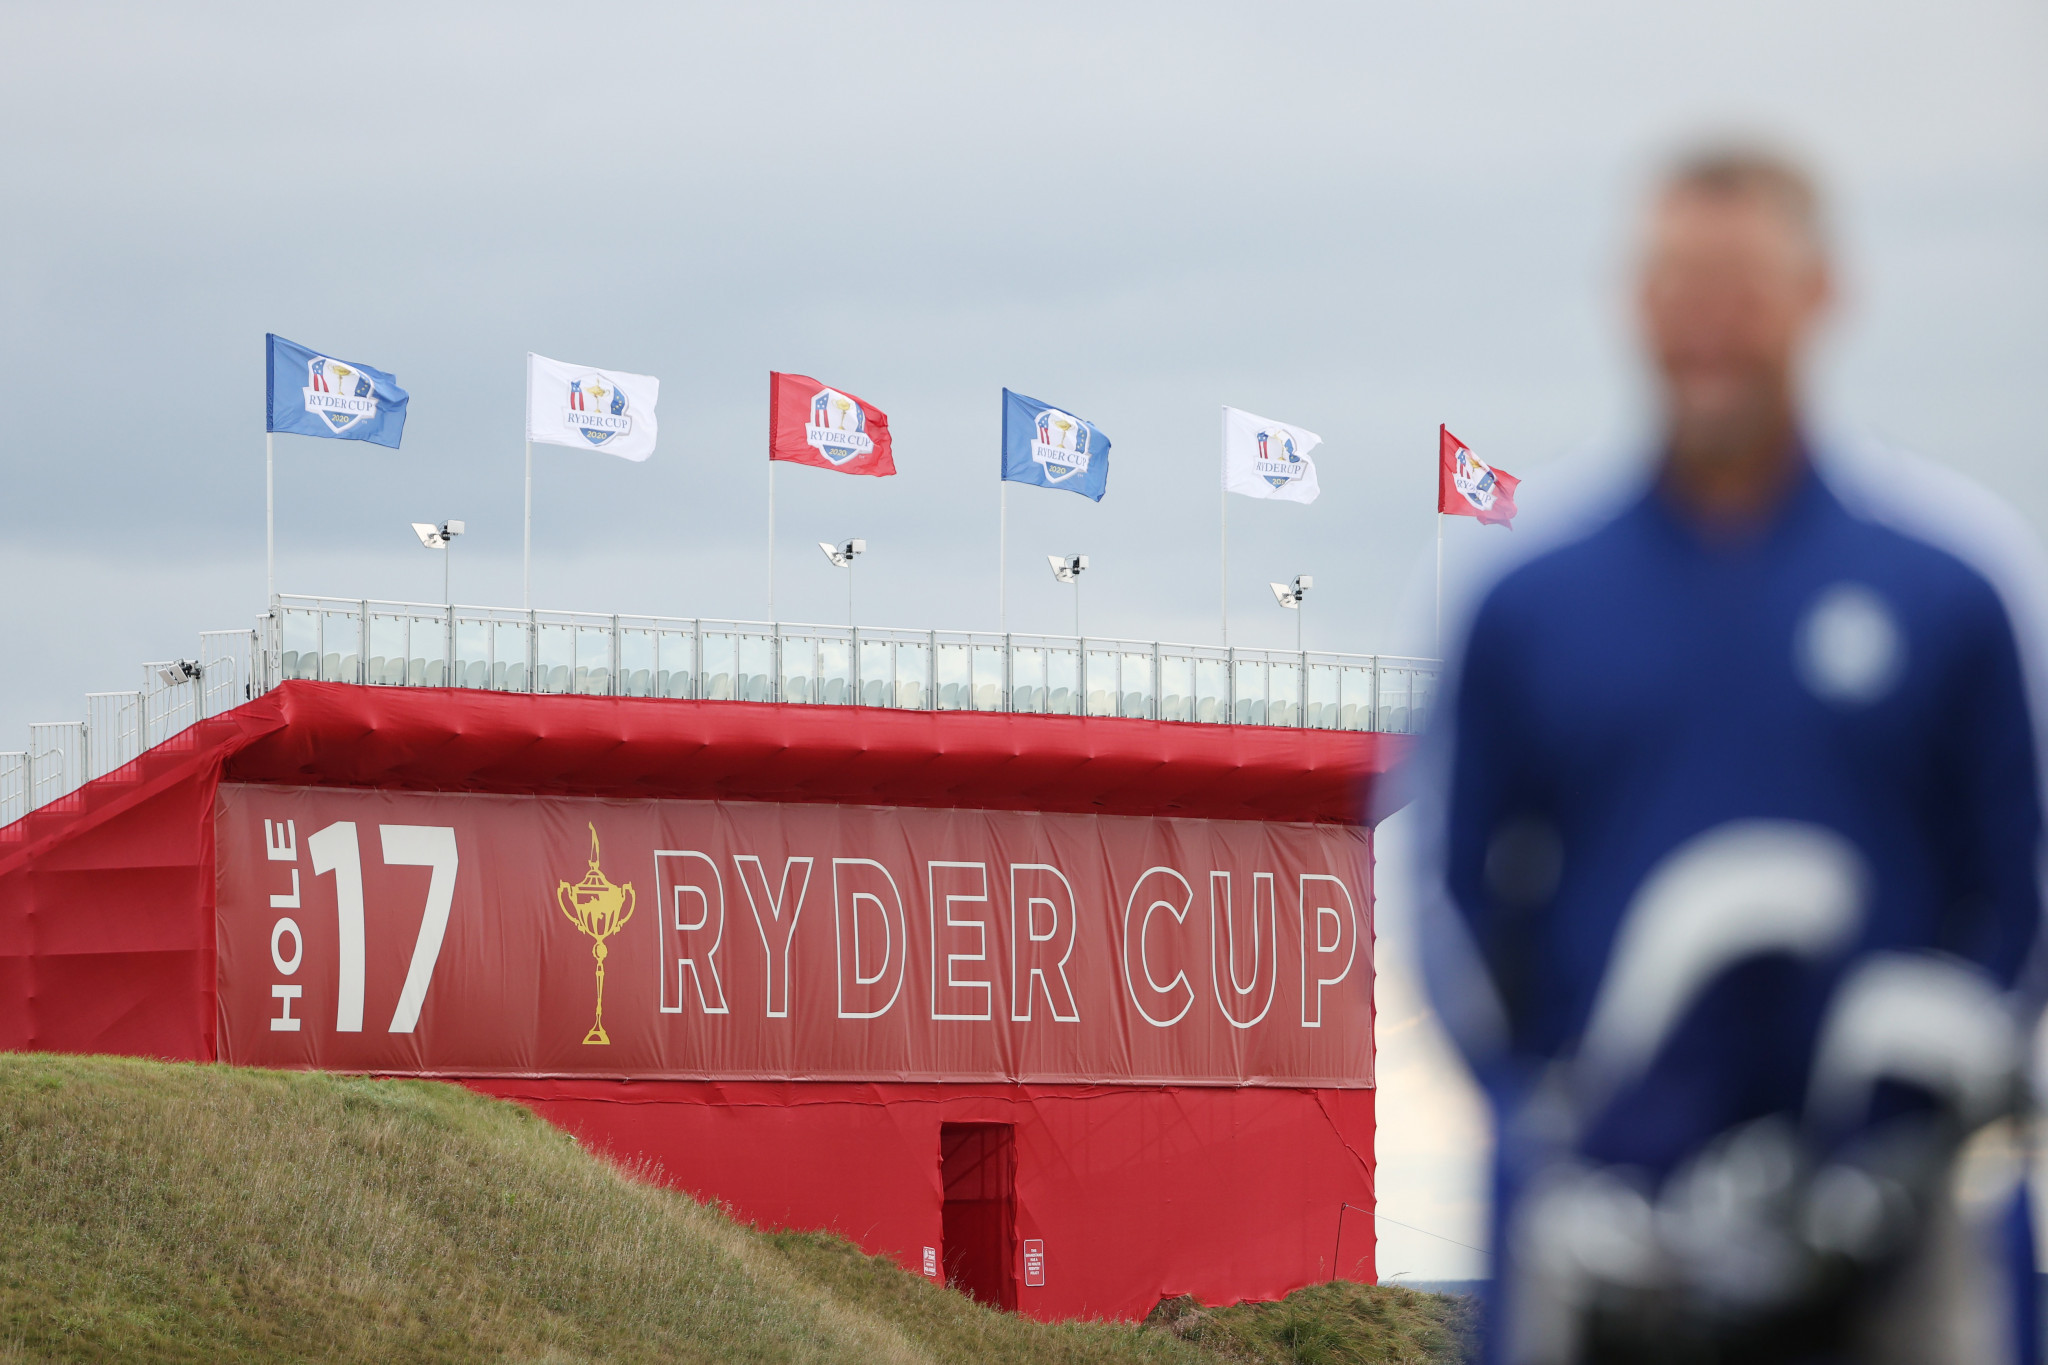 Stricker hopes to tee up winning homecoming at Ryder Cup in Wisconsin